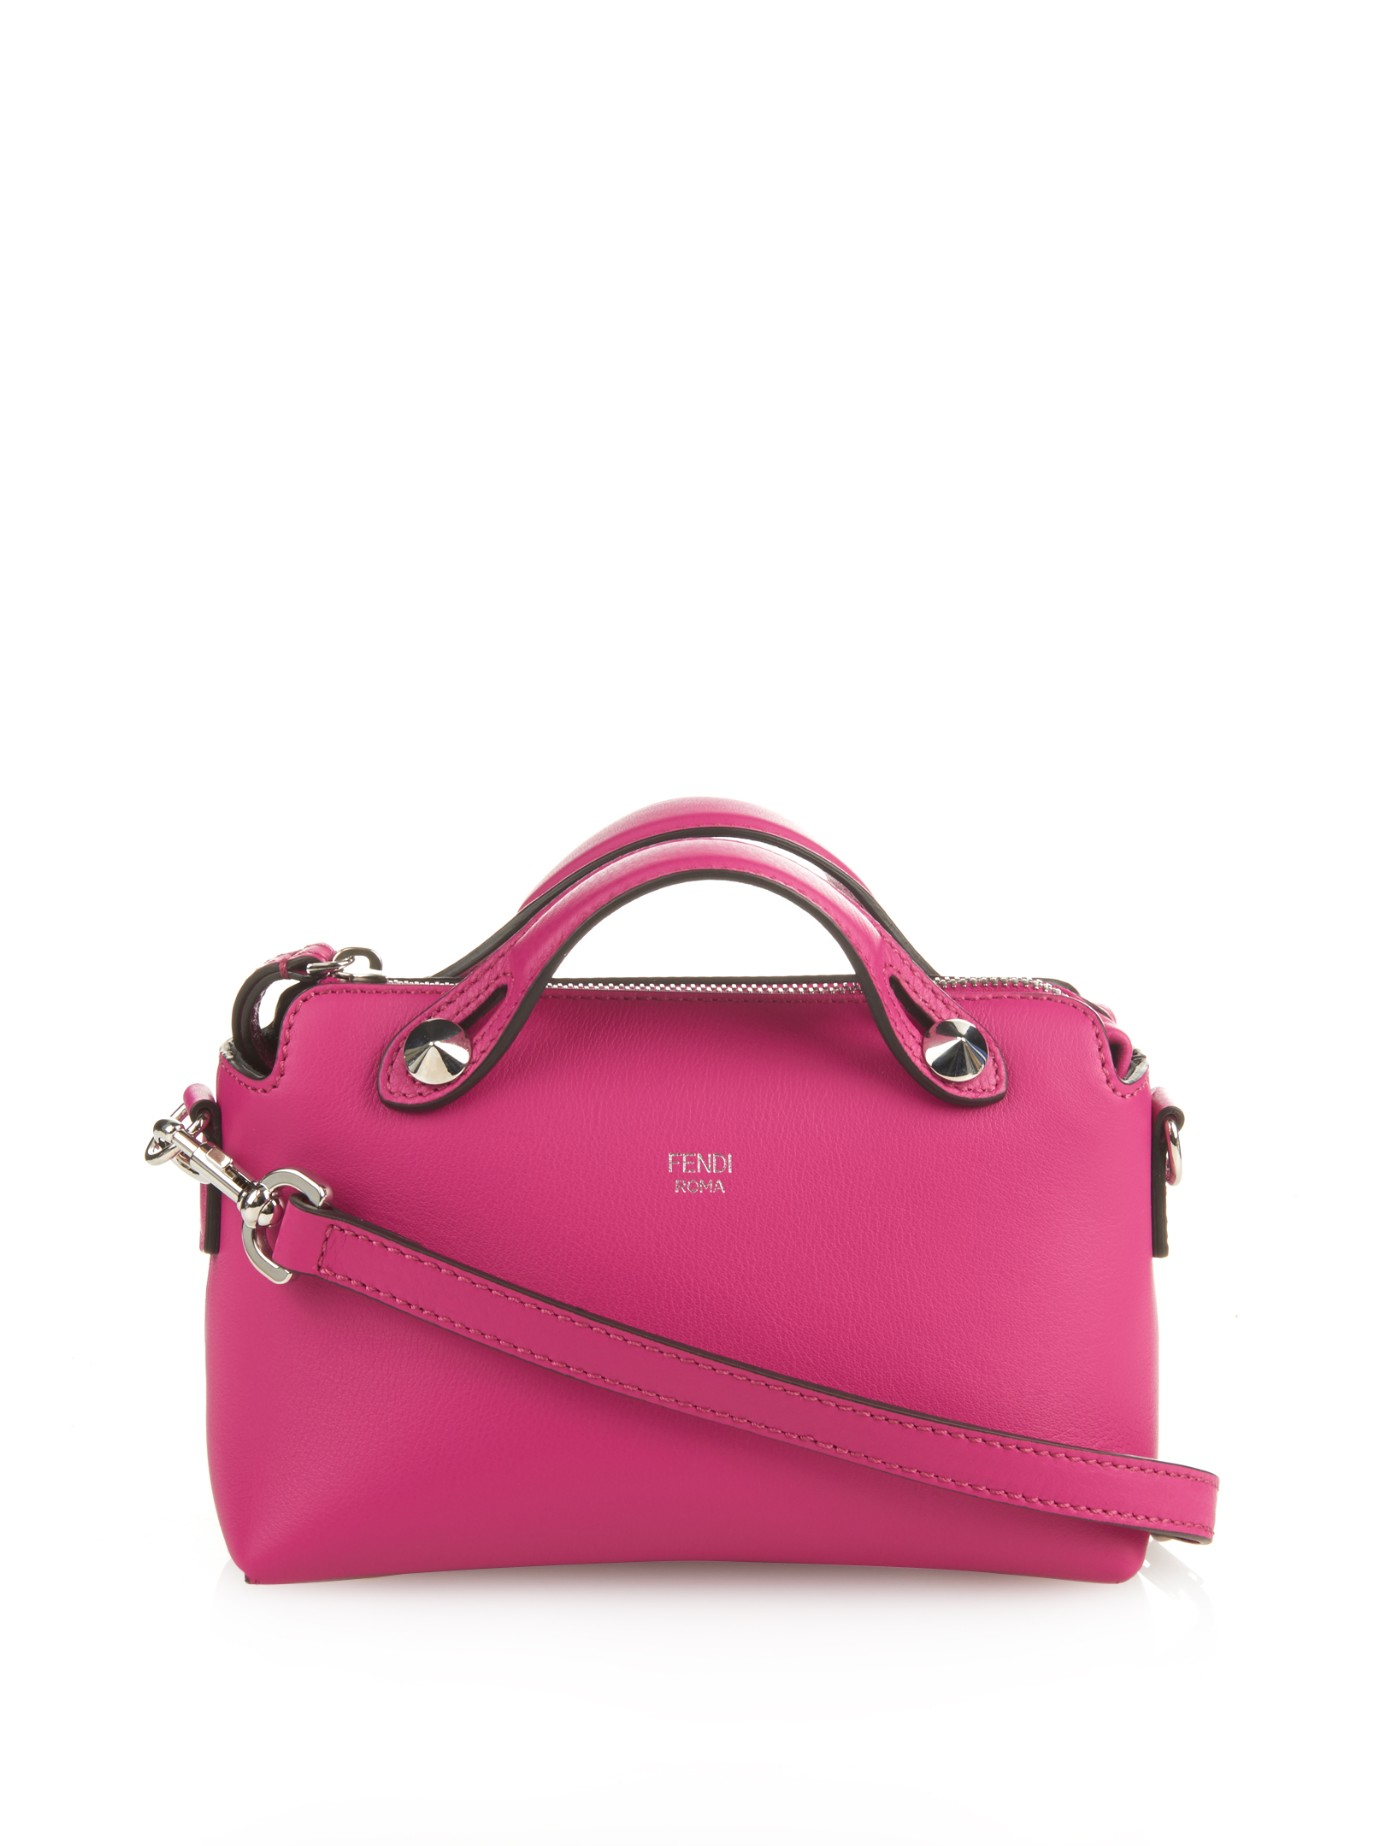 Fendi By The Way Mini Leather Cross-Body Bag in Dark Pink (Pink) - Lyst